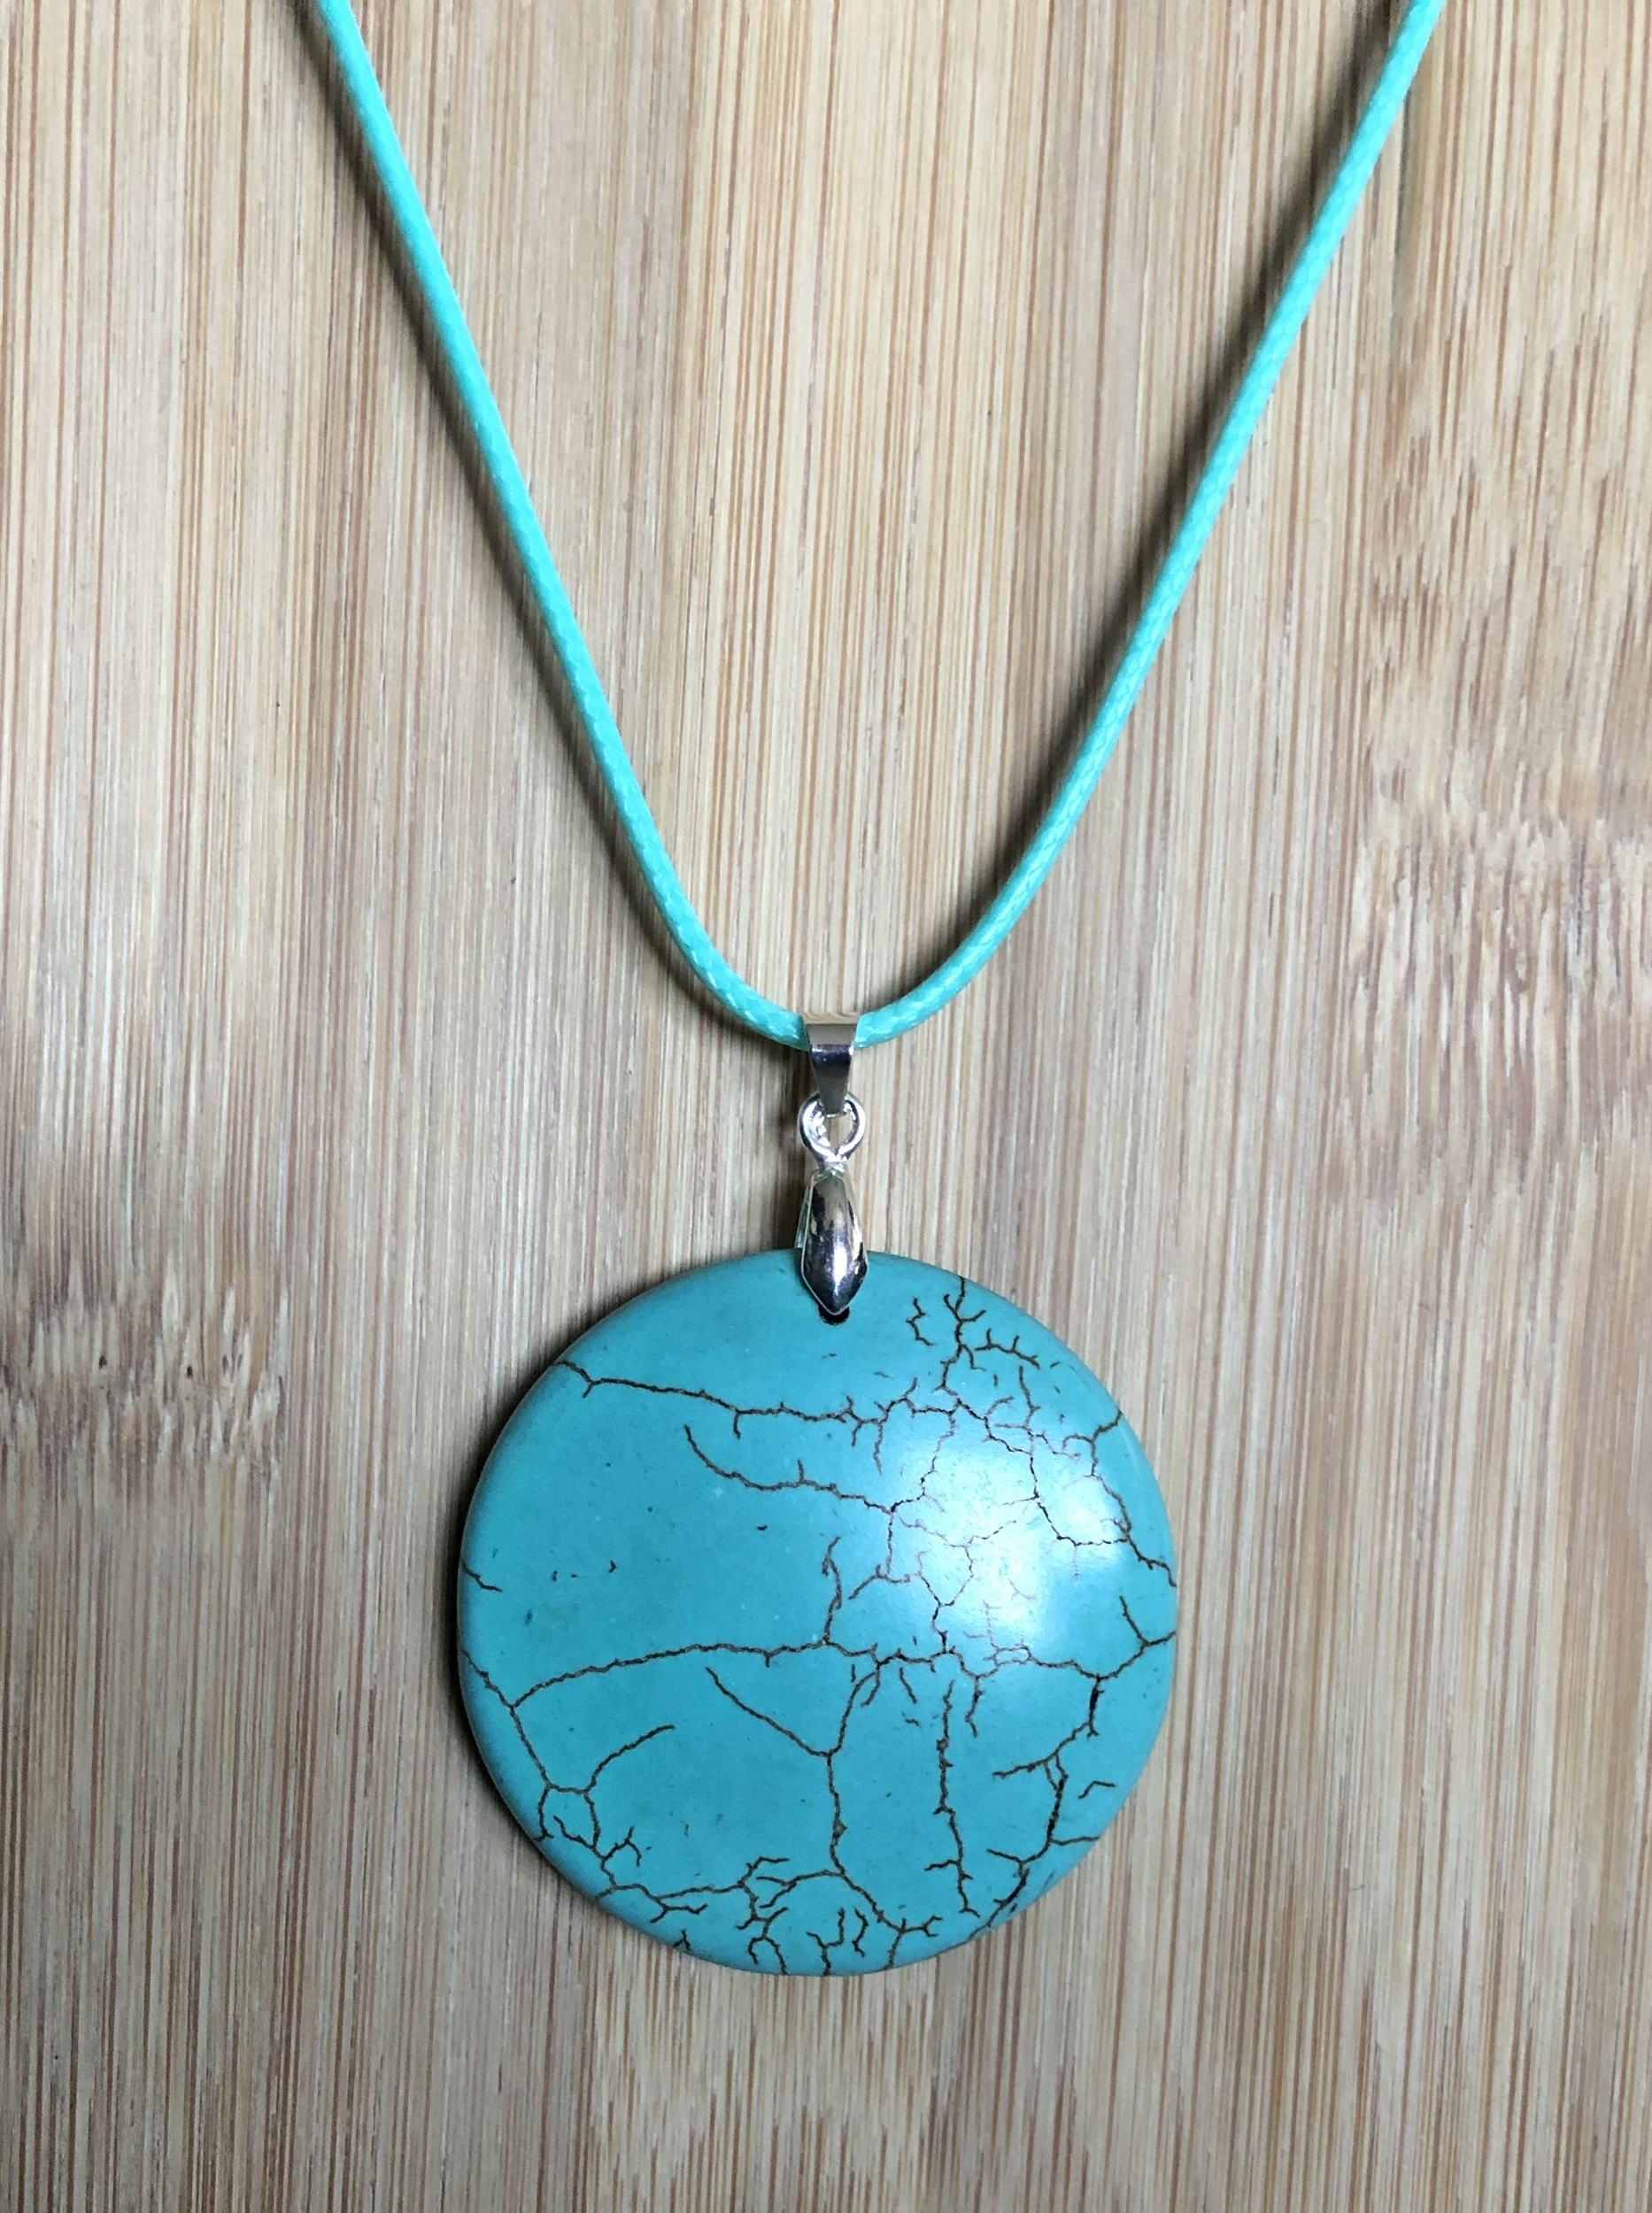 Collier turquoise howlite forme ronde  - Angel shop